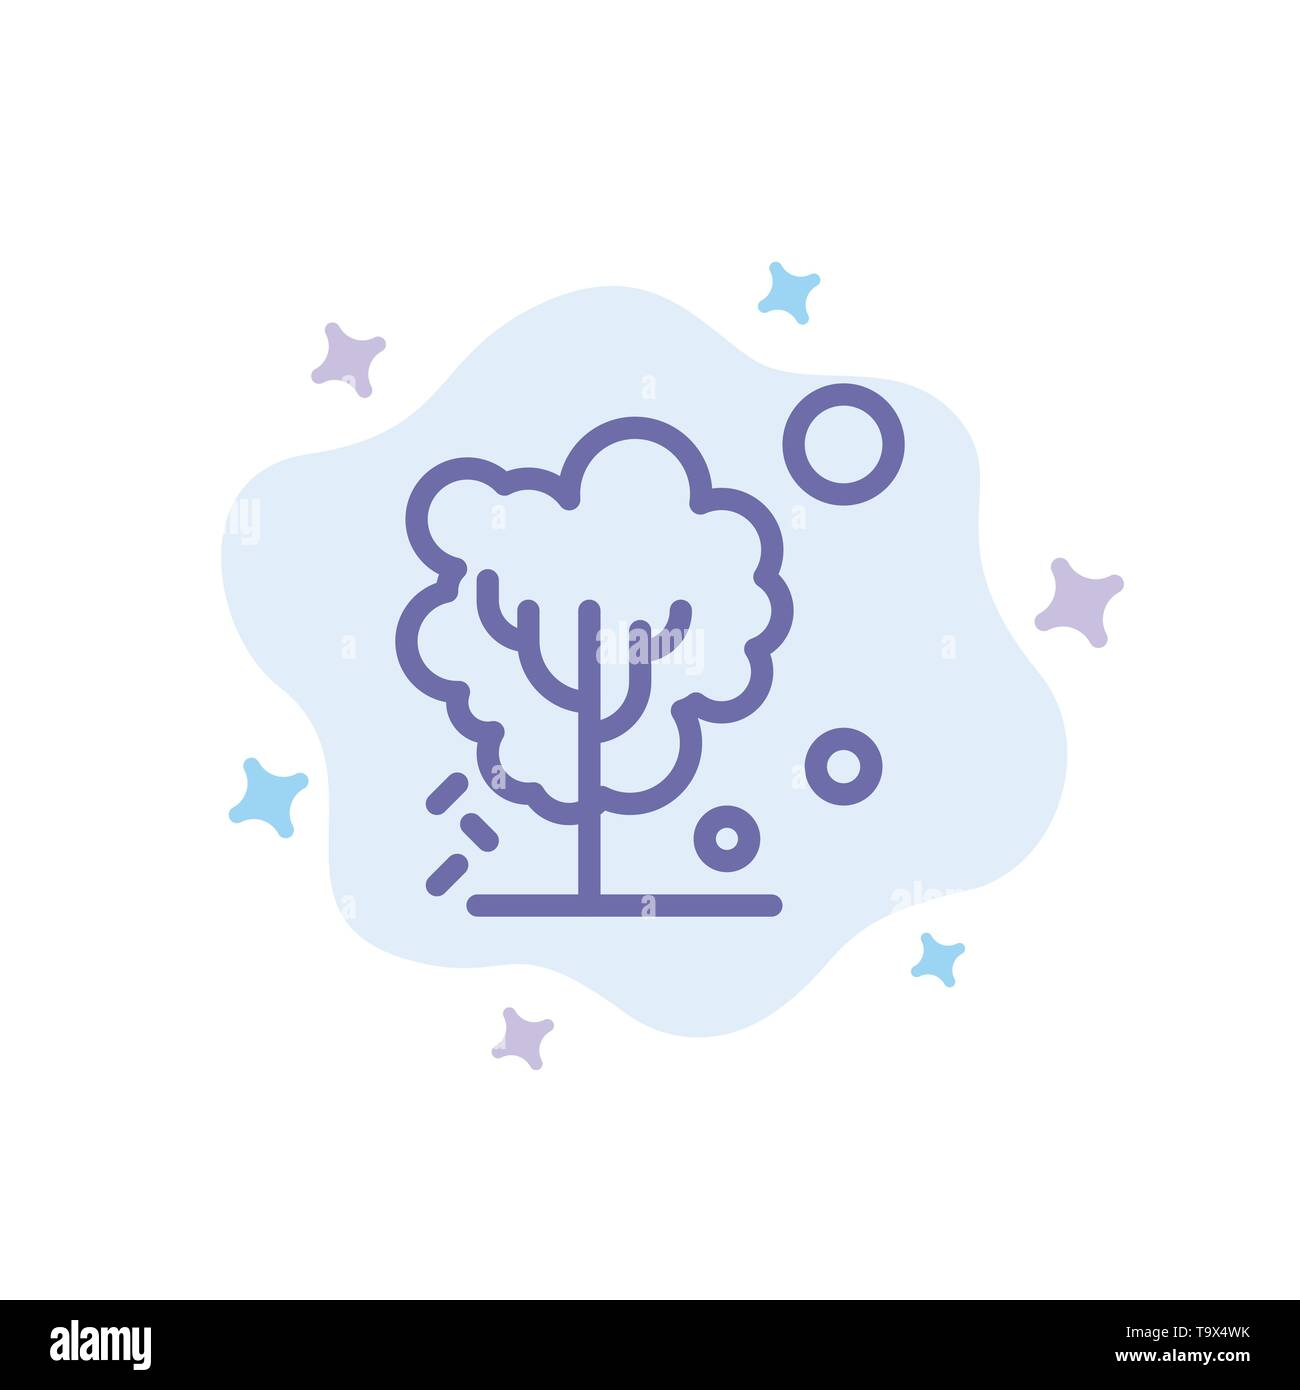 Dry, Global, Soil, Tree, Warming Blue Icon on Abstract Cloud Background - Stock Image